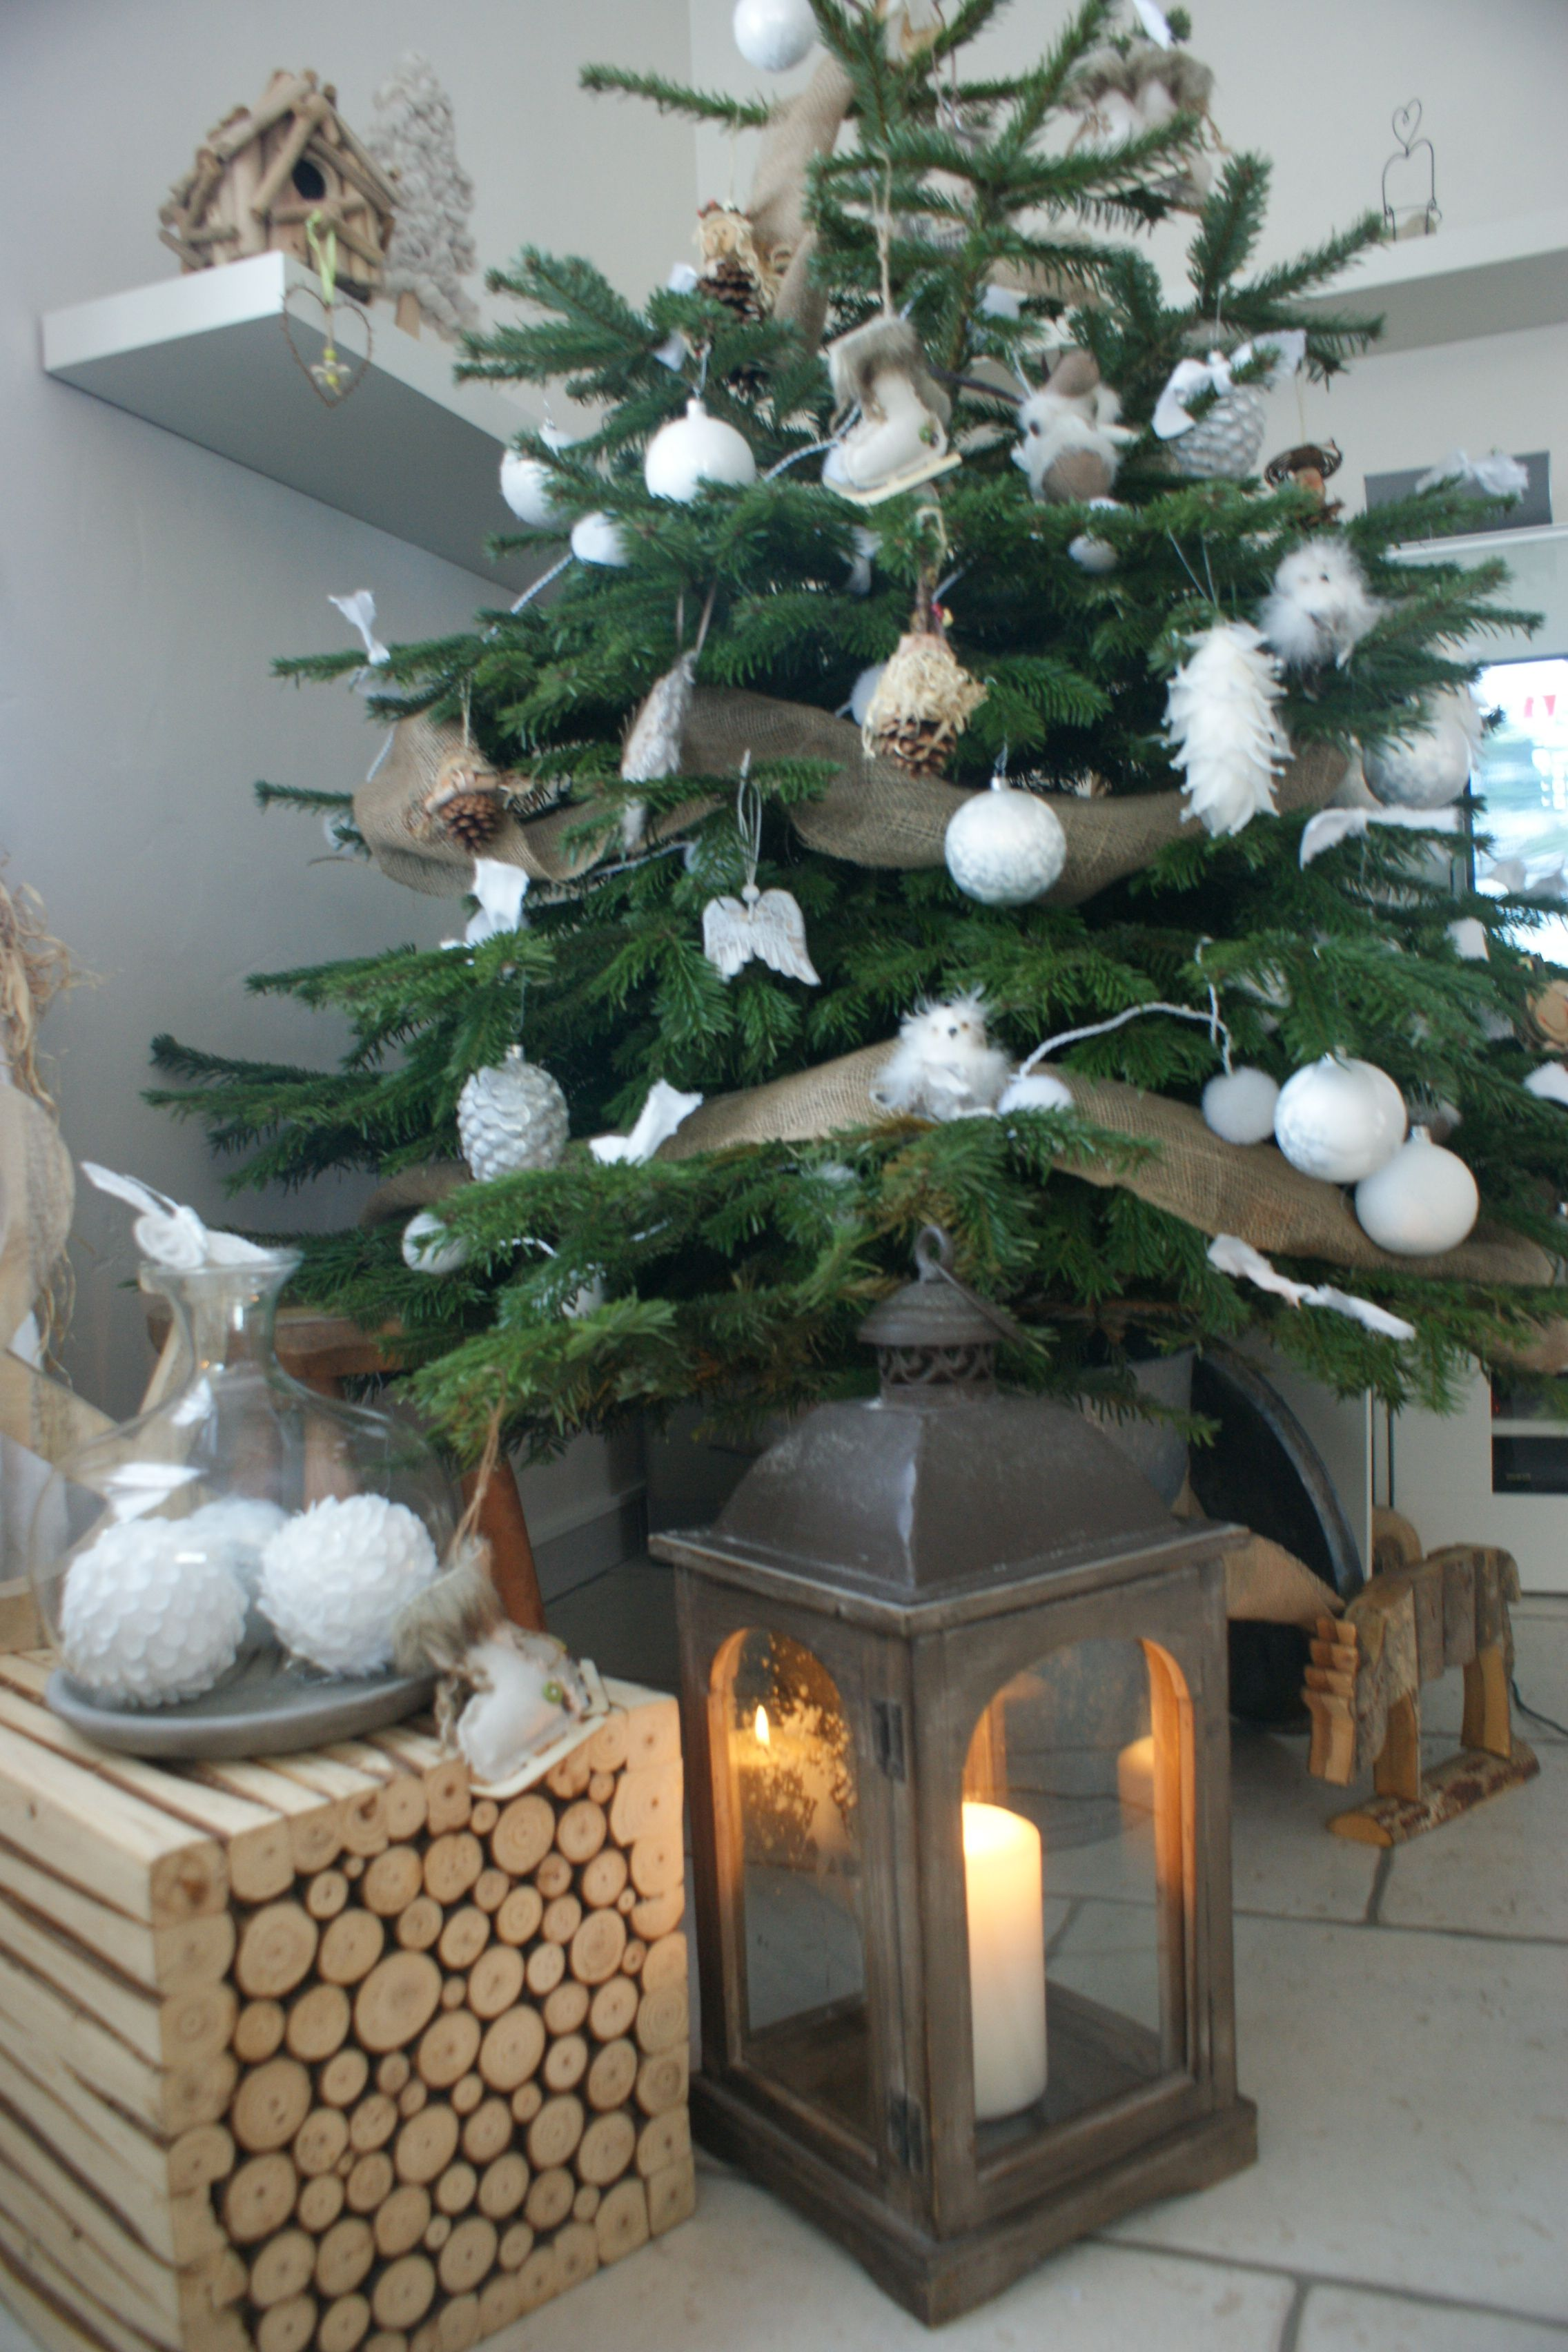 Mon Joli Sapin De Noel Blanc Et Naturel. Chrismas Tree White U0026 Natural